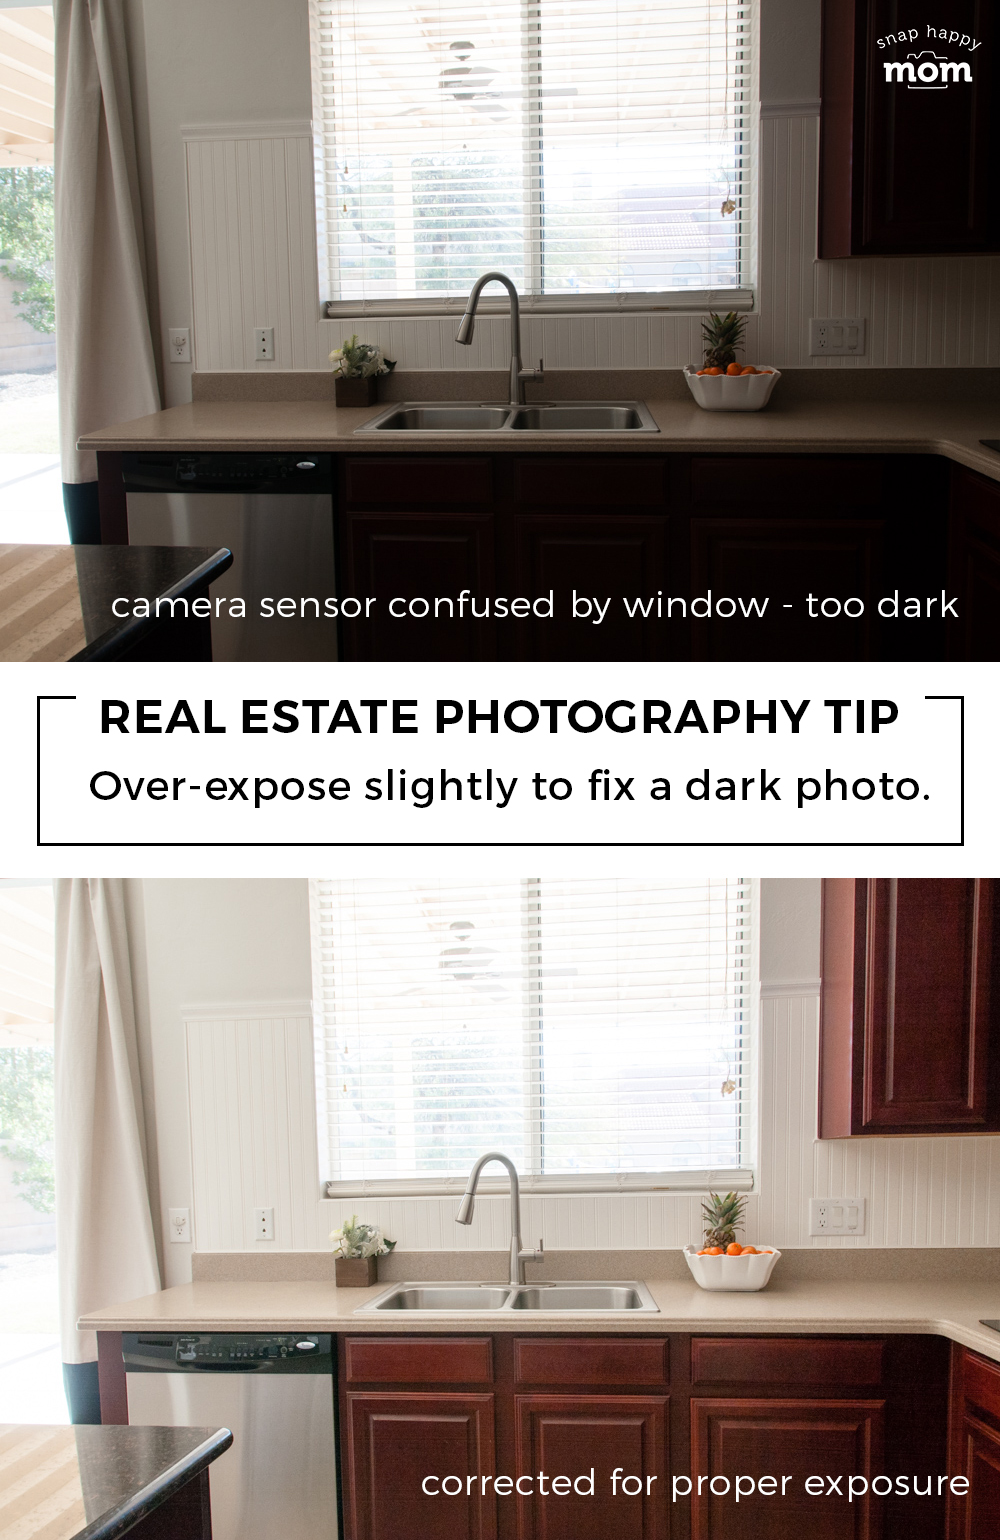 Real Estate Photography Tip: Over expose slightly to fix a dark photo.